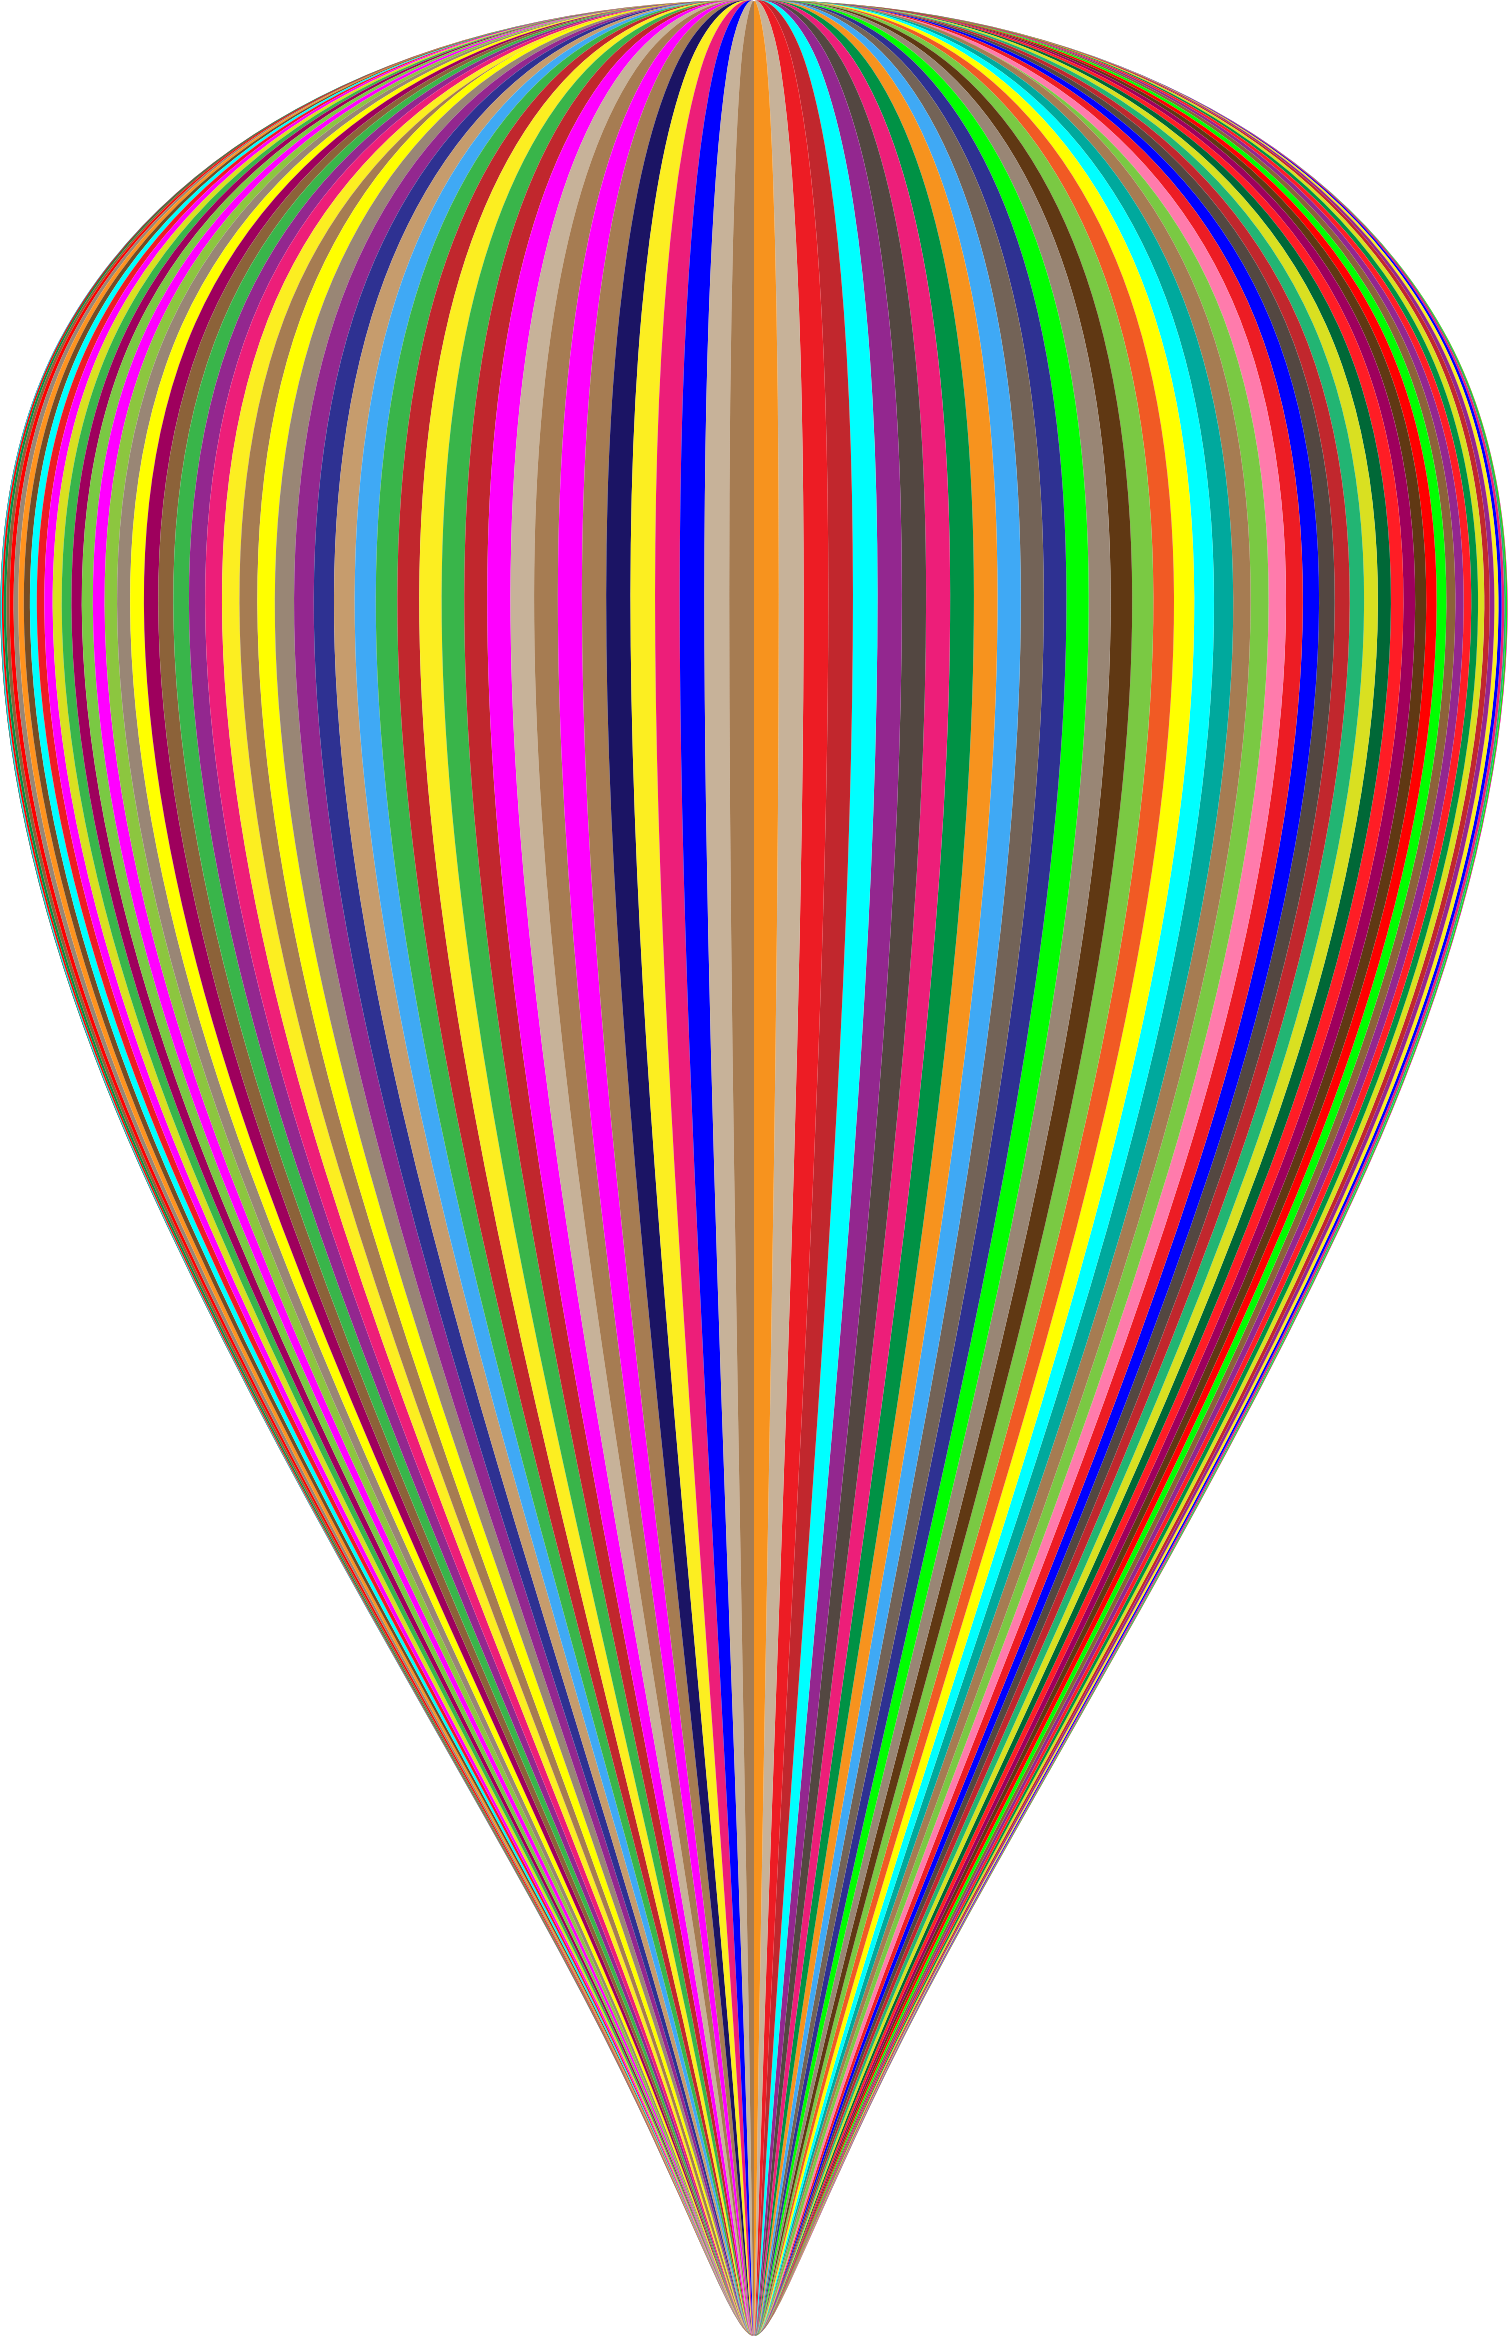 Colorful balloon big image. Number 1 clipart striped